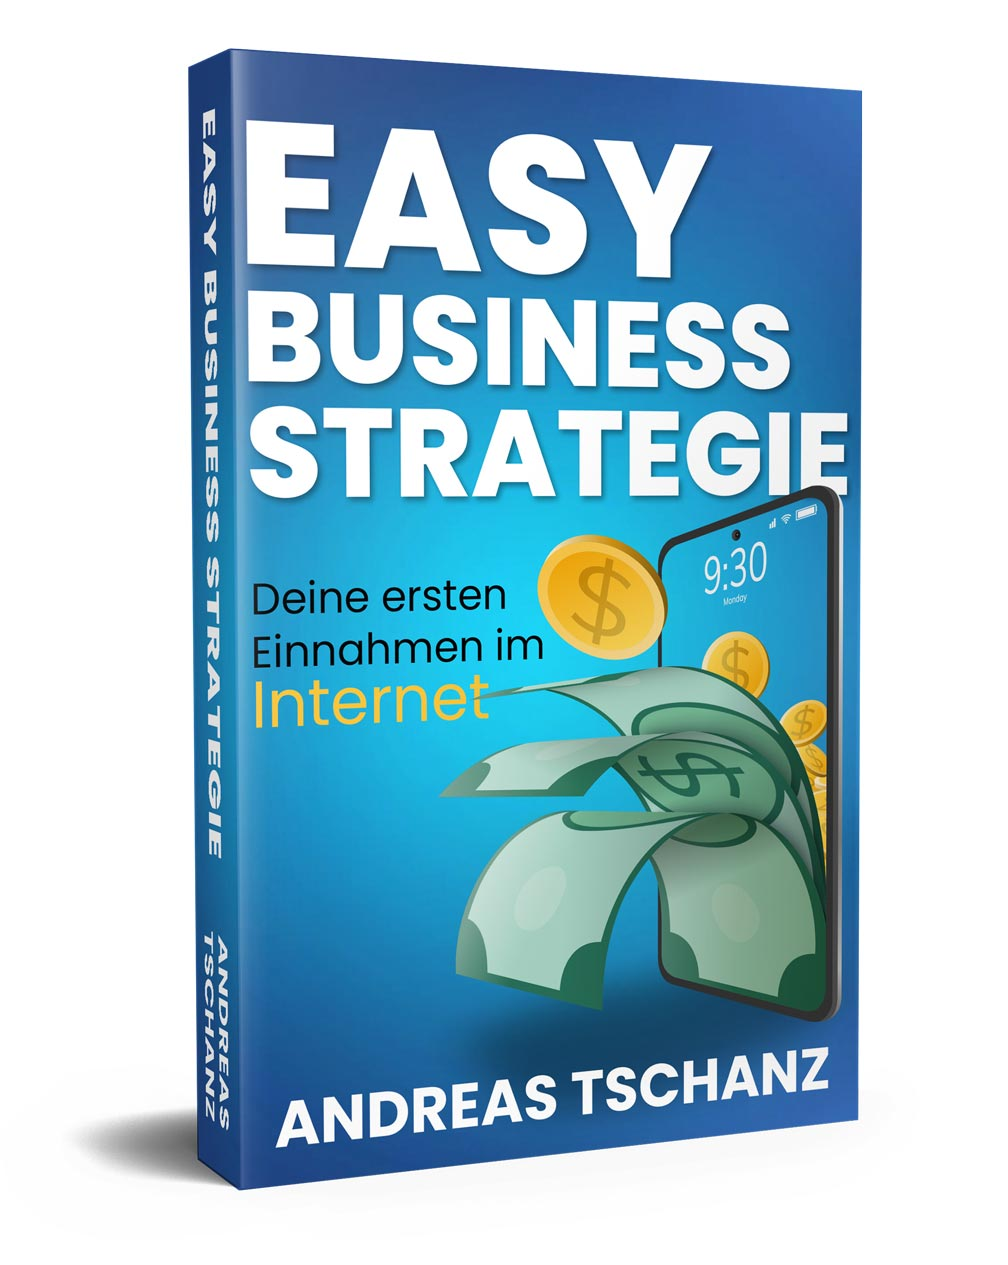 easy-business-strategie-3d-fuer-web